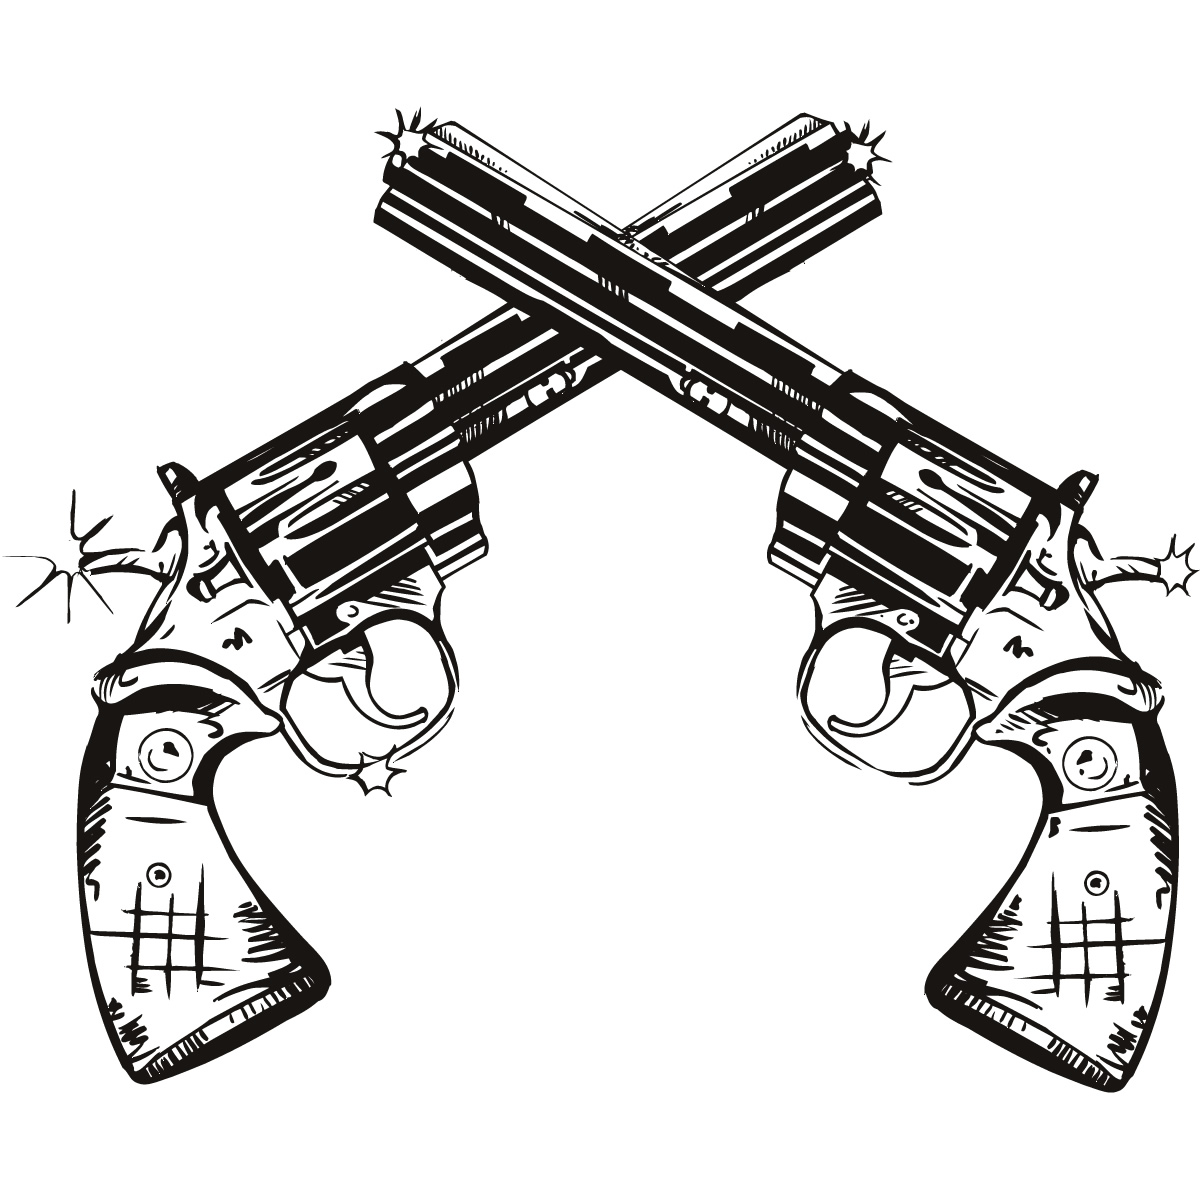 graphic freeuse stock Free download best . Western gun clipart